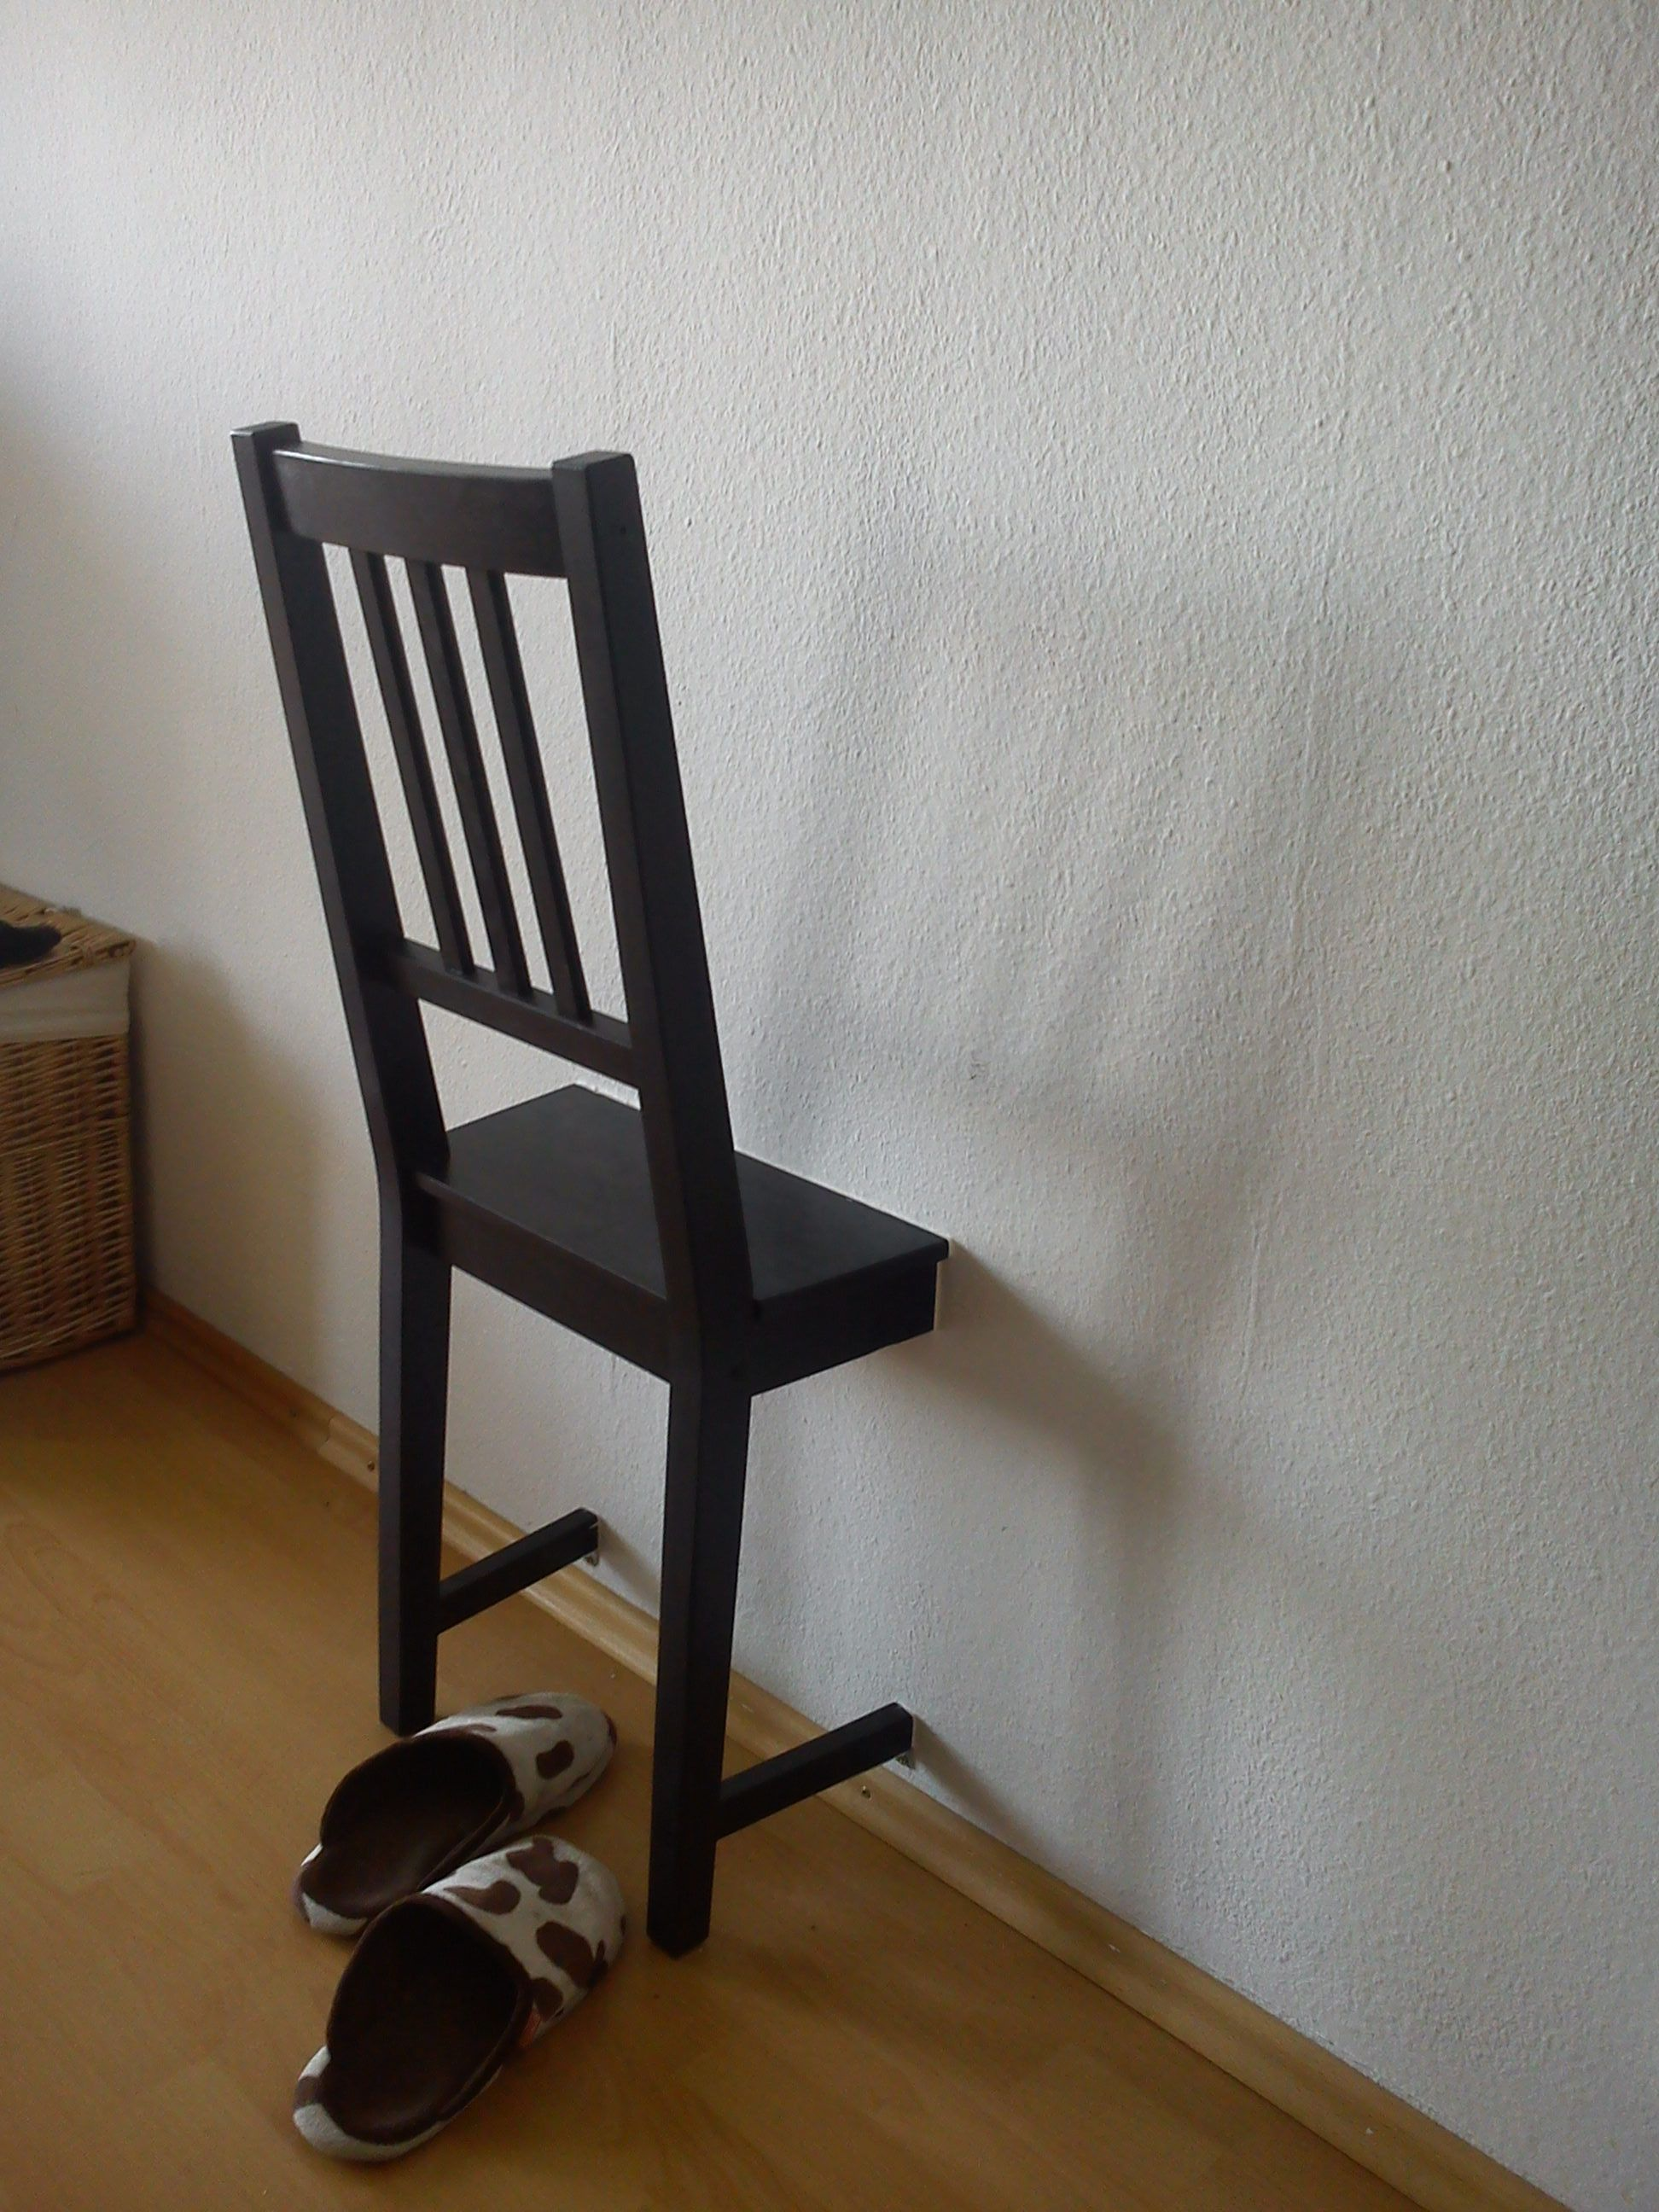 Bedroom Wardrobe Chair Valet Gaming Clothes So Easy To Diy Things I Would Like